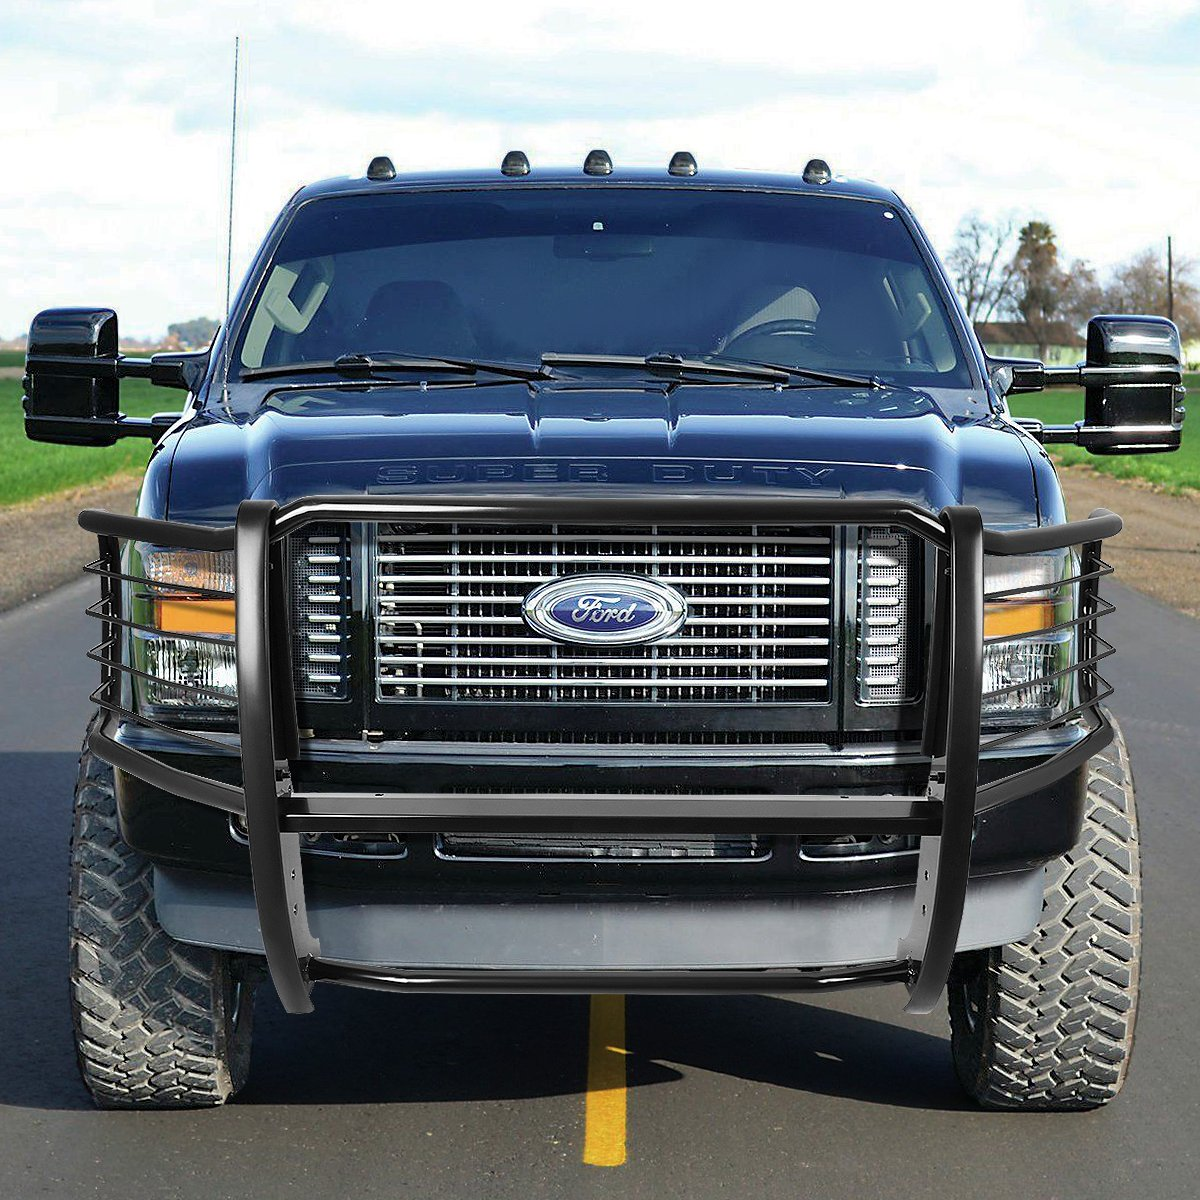 For Ford F250 F350 F450 F550 Superduty Front Bumper 1955 Truck Protector Brush Grille Guard Black Automotive